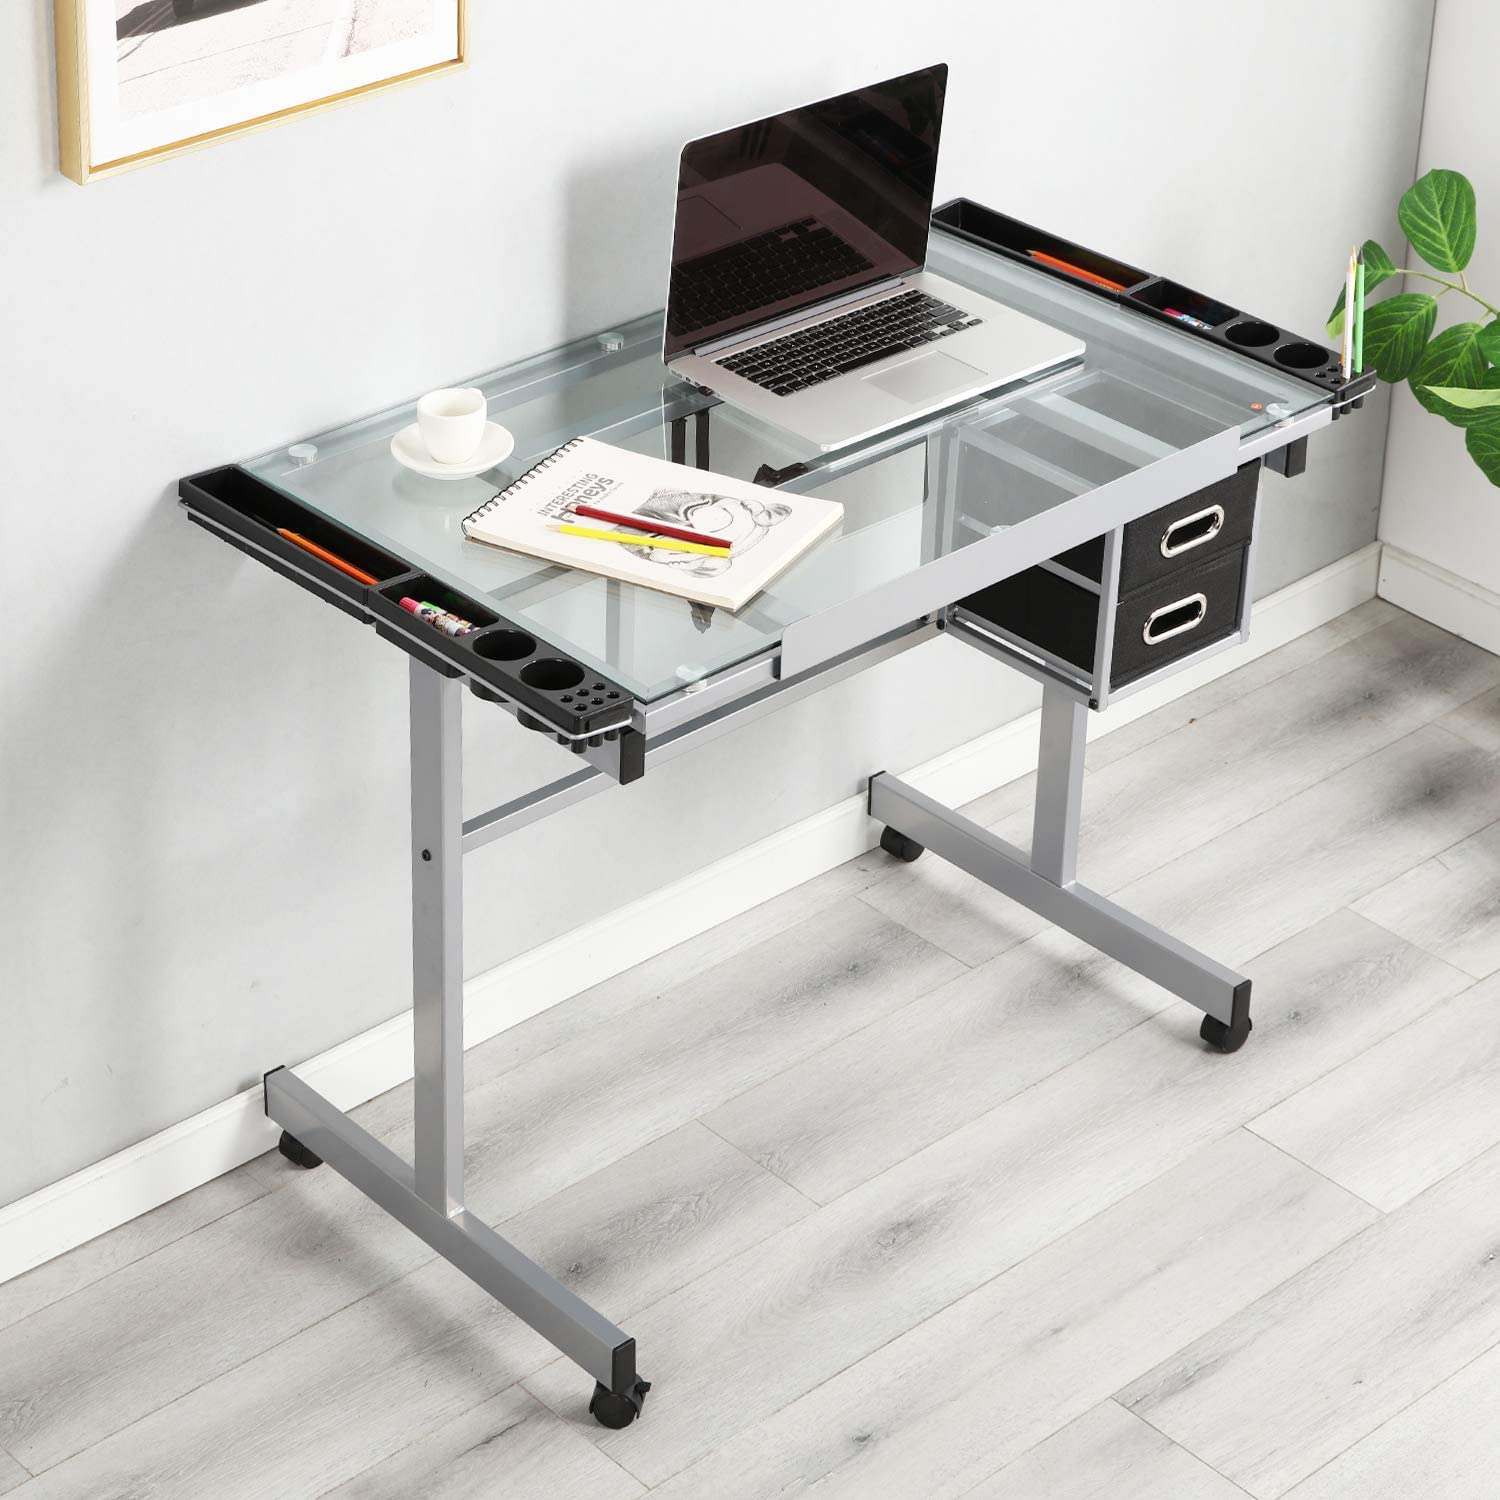 DCA-UTDT1033 DlandHome Glass Drafting Table Adjustable Drawing Table Craft Station Center With 2 Storage Drawers